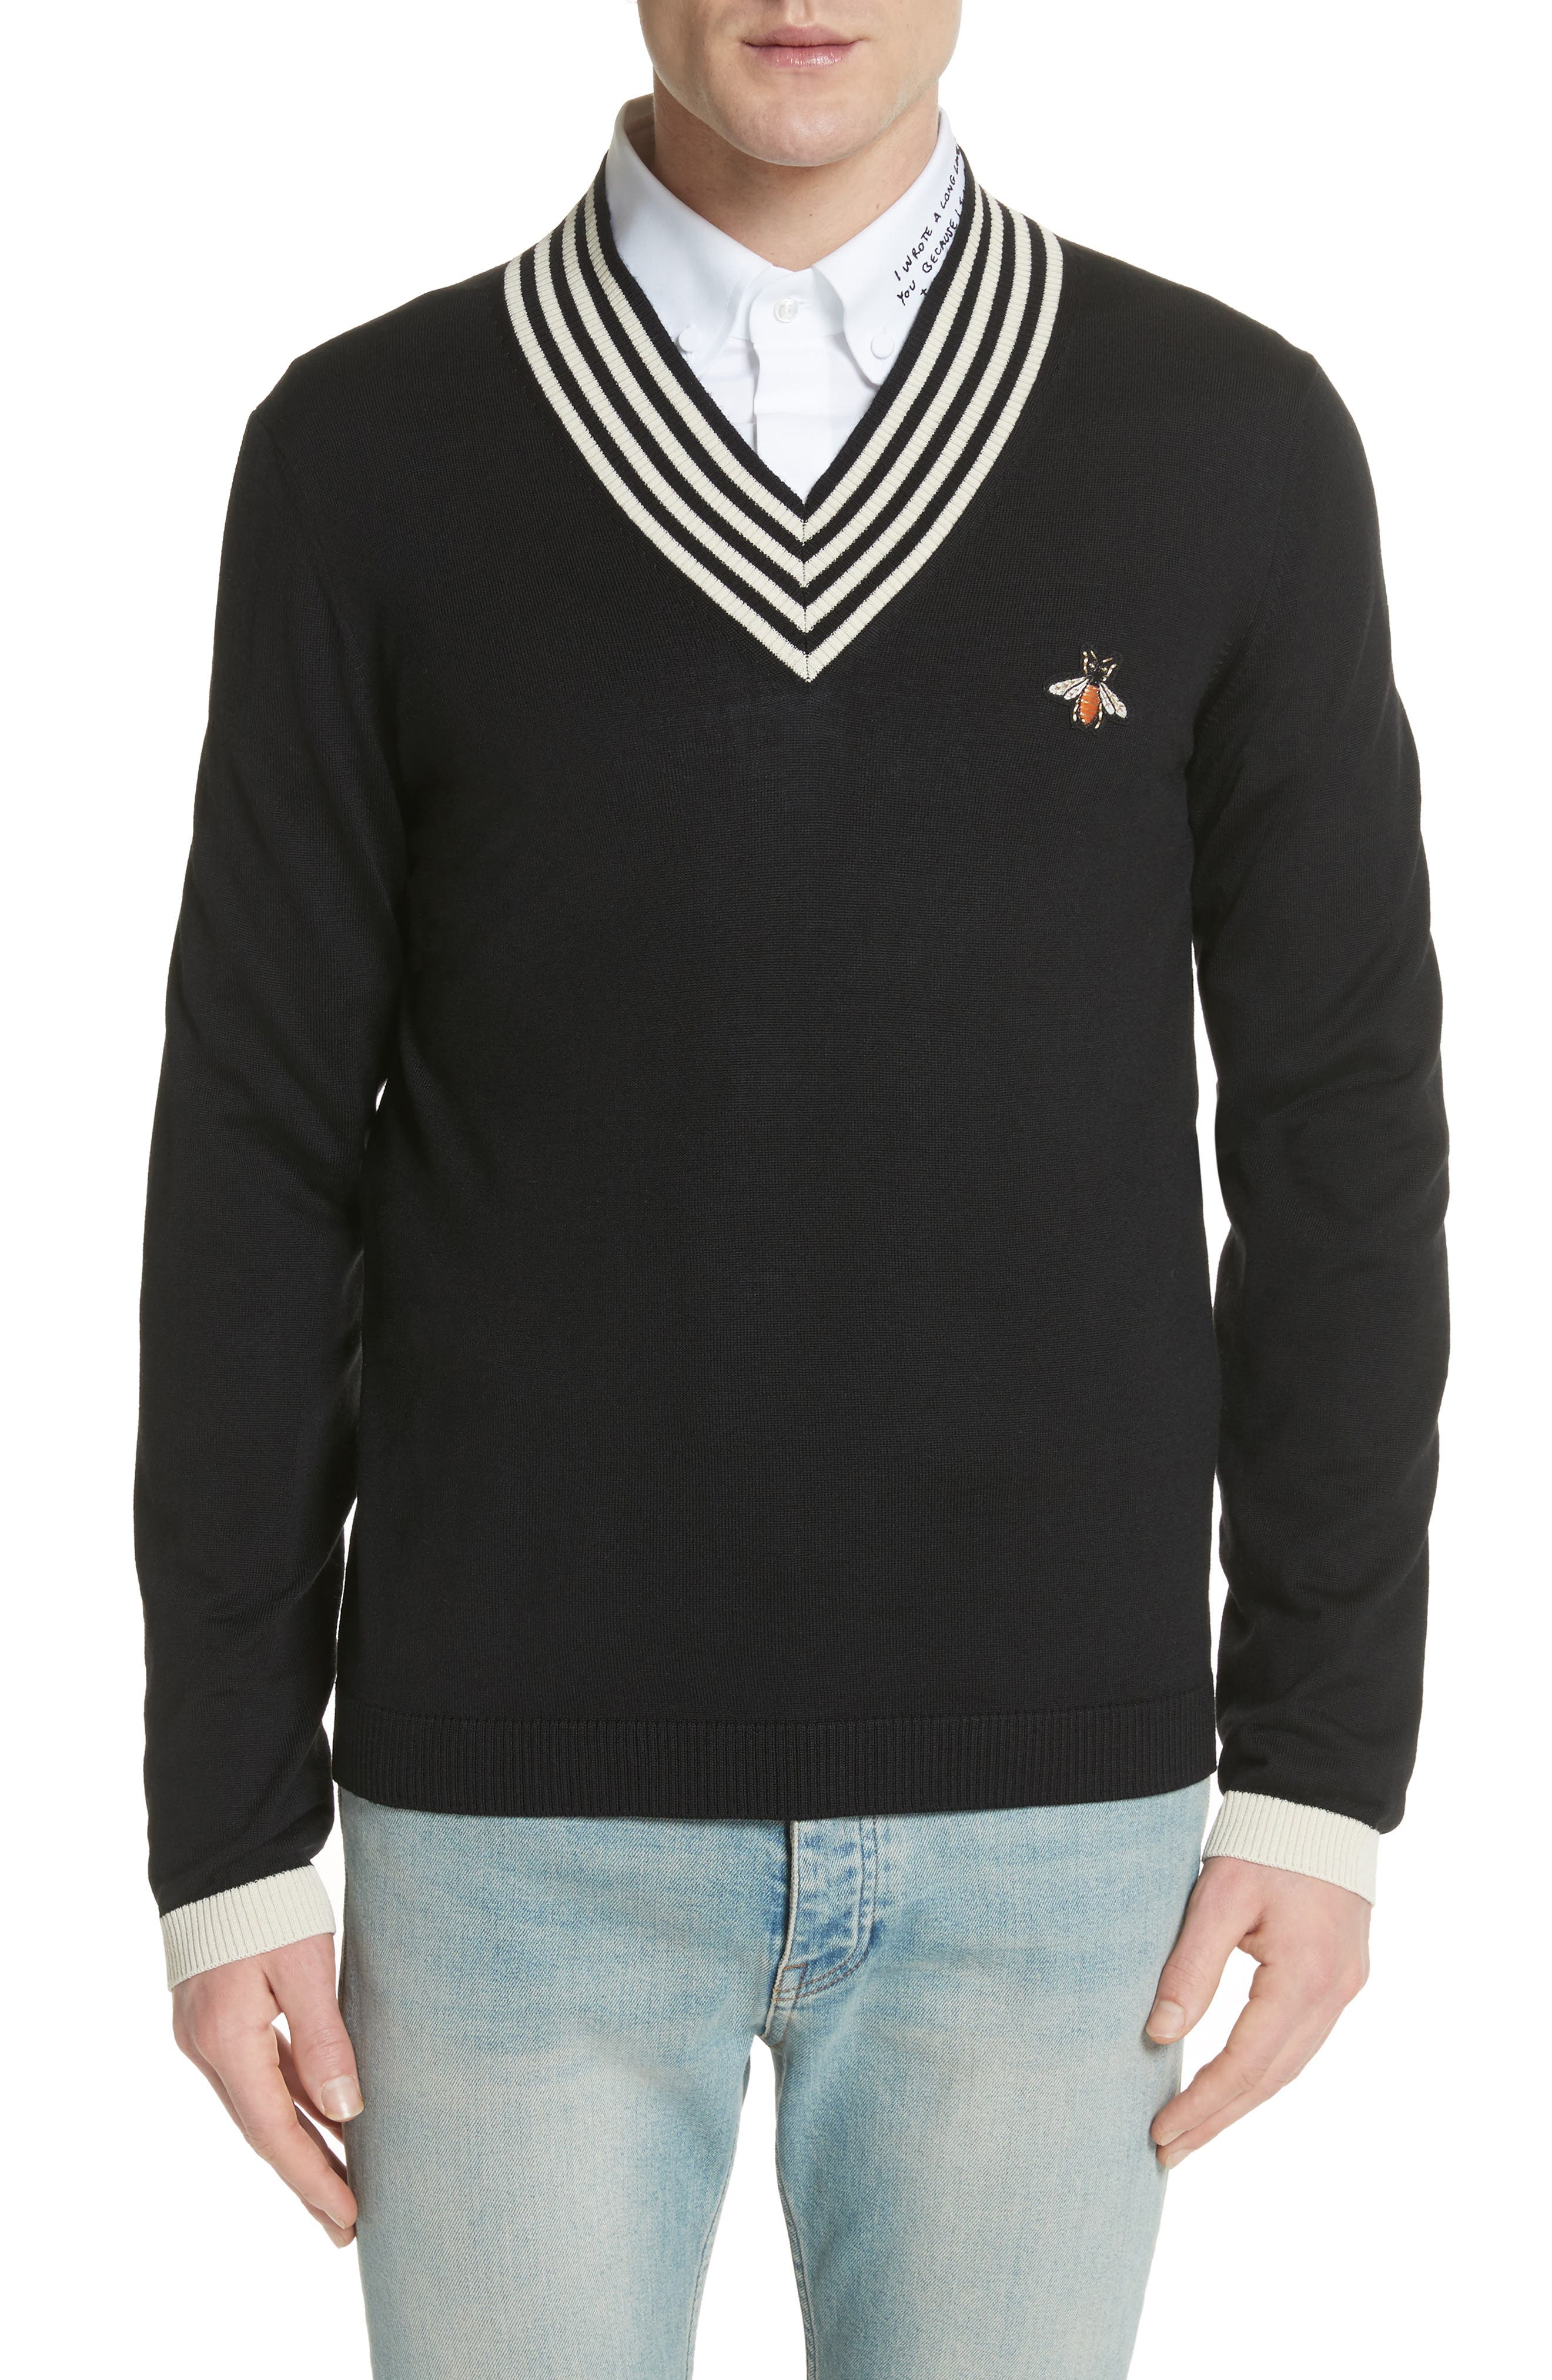 Bee Appliqué Wool Pullover Sweater,                         Main,                         color, 1831 Black